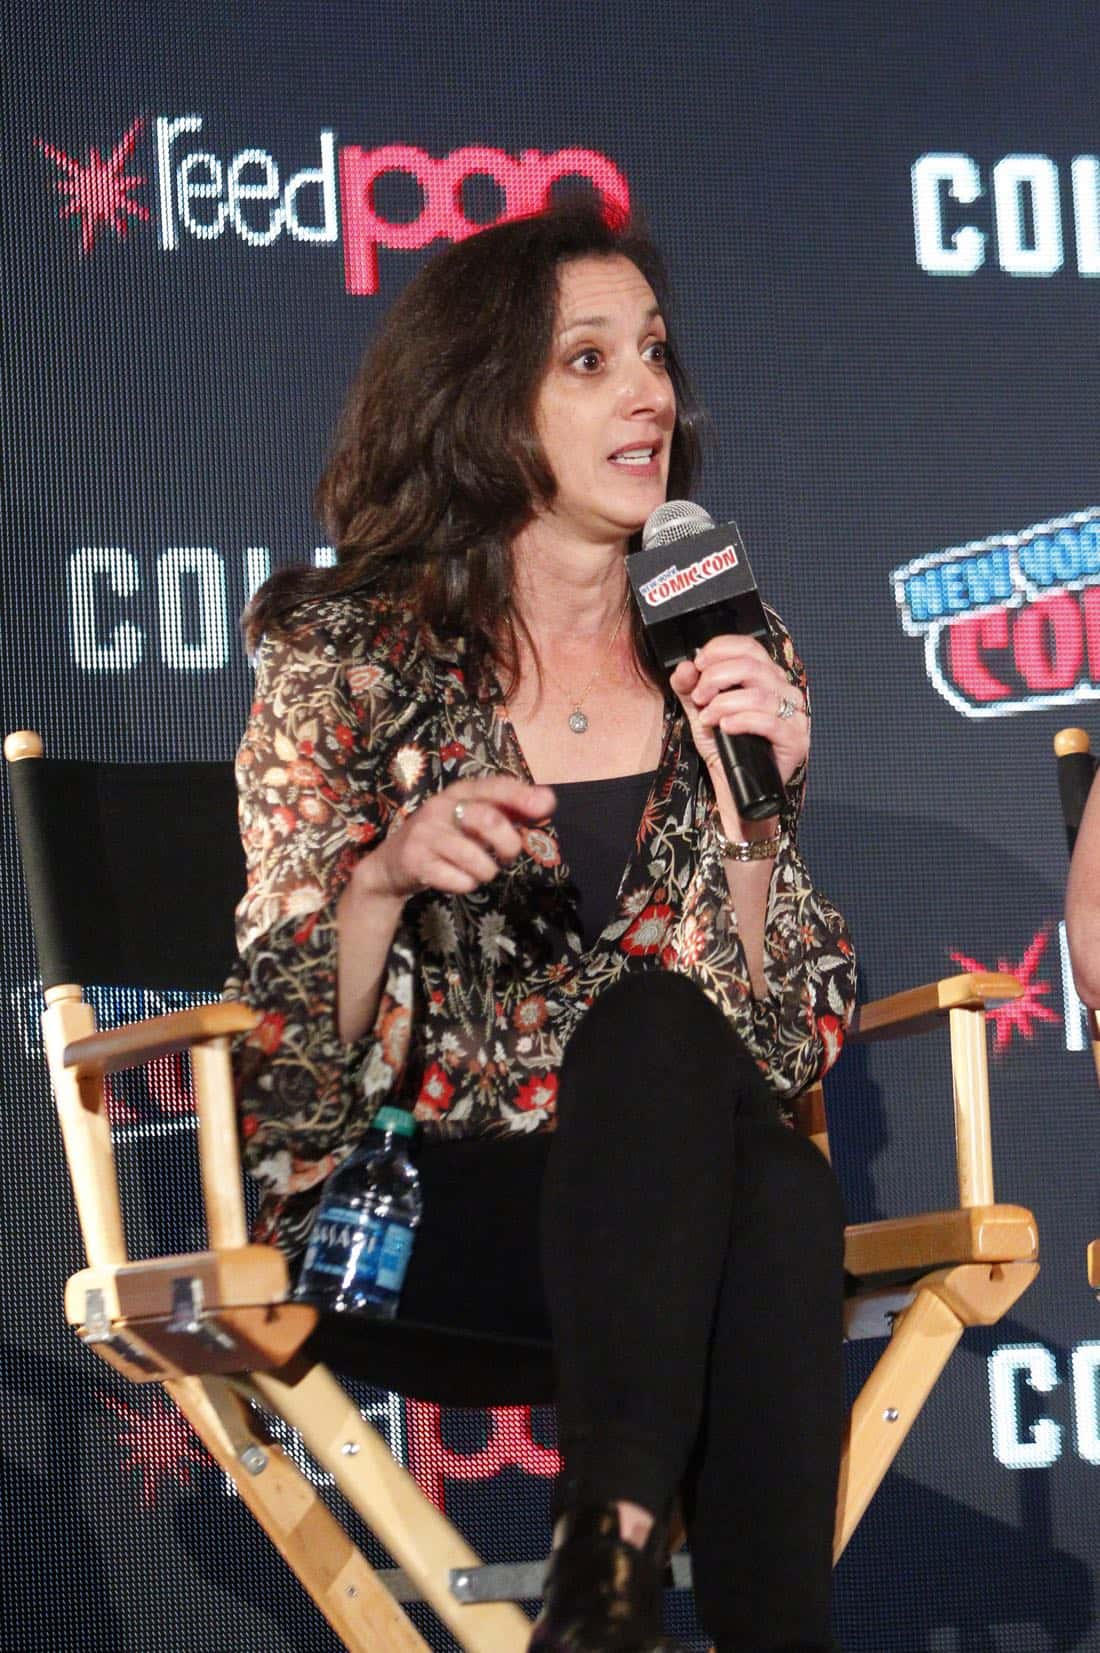 "NY COMIC-CON 2017 - SIREN - Freeform's genre programming was out in full force at this year's New York Comic Con on Saturday, October 7th with executive producers and cast from the hit series ""Shadowhunters,"" ""Beyond,"" and new original series ""Siren."" (Freeform/Lou Rocco) EMILY WHITESELL (EXECUTIVE PRODUCER)"